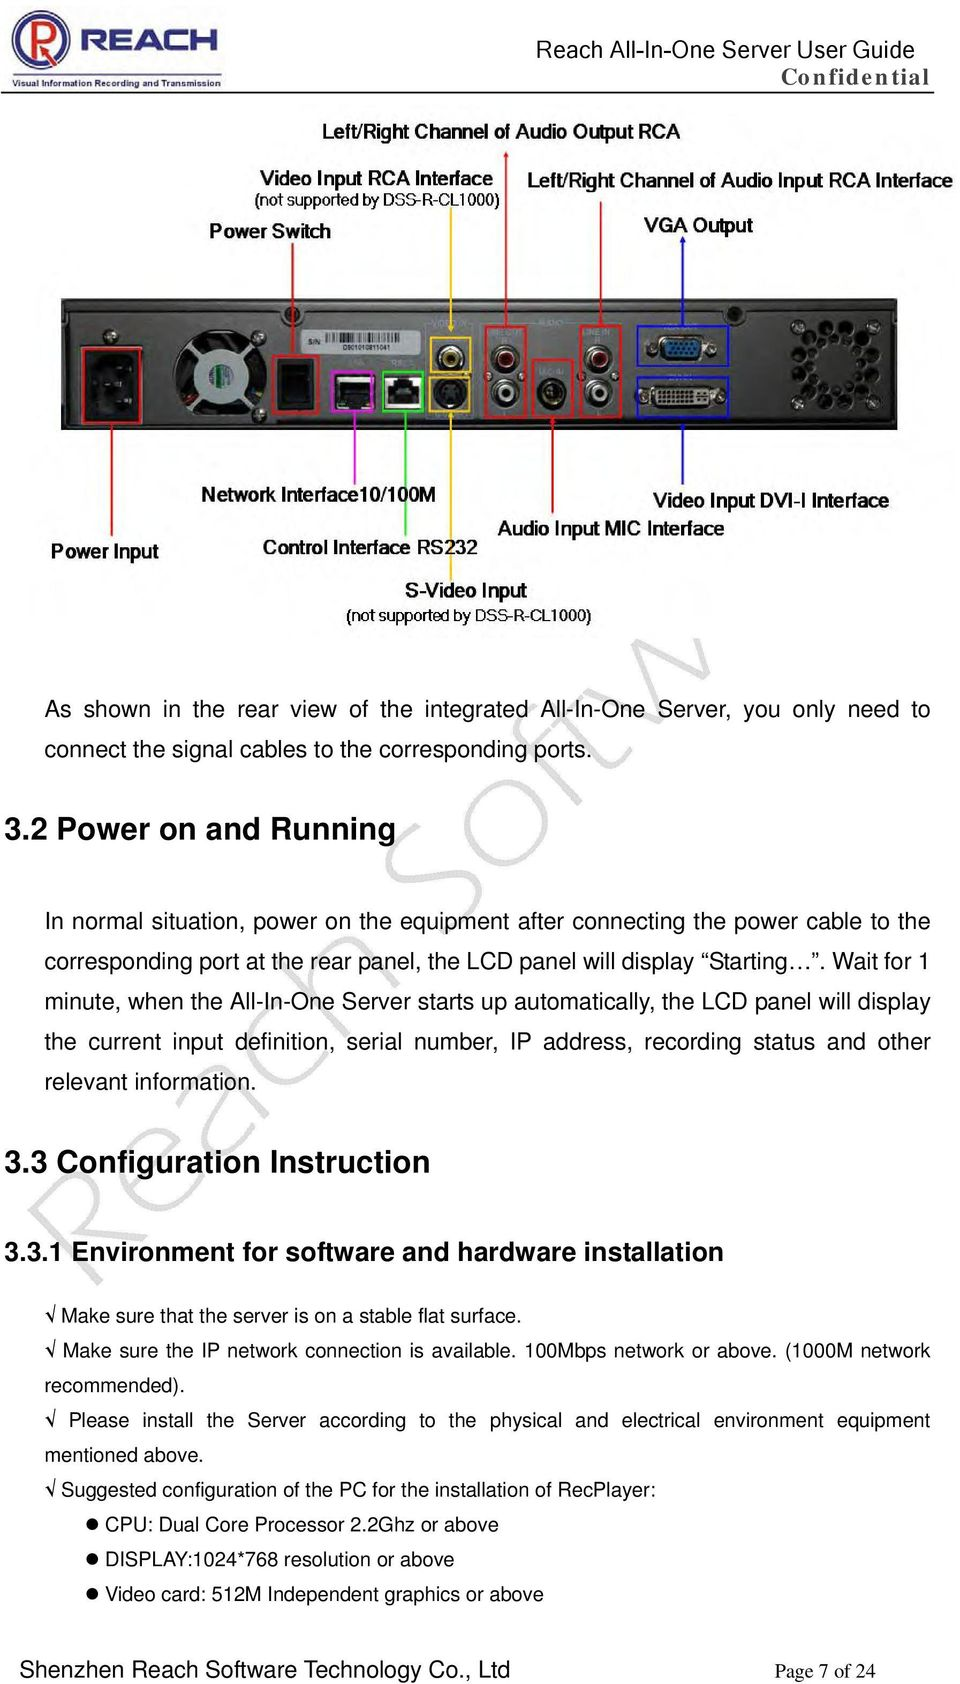 Wait for 1 minute, when the All-In-One Server starts up automatically, the LCD panel will display the current input definition, serial number, IP address, recording status and other relevant